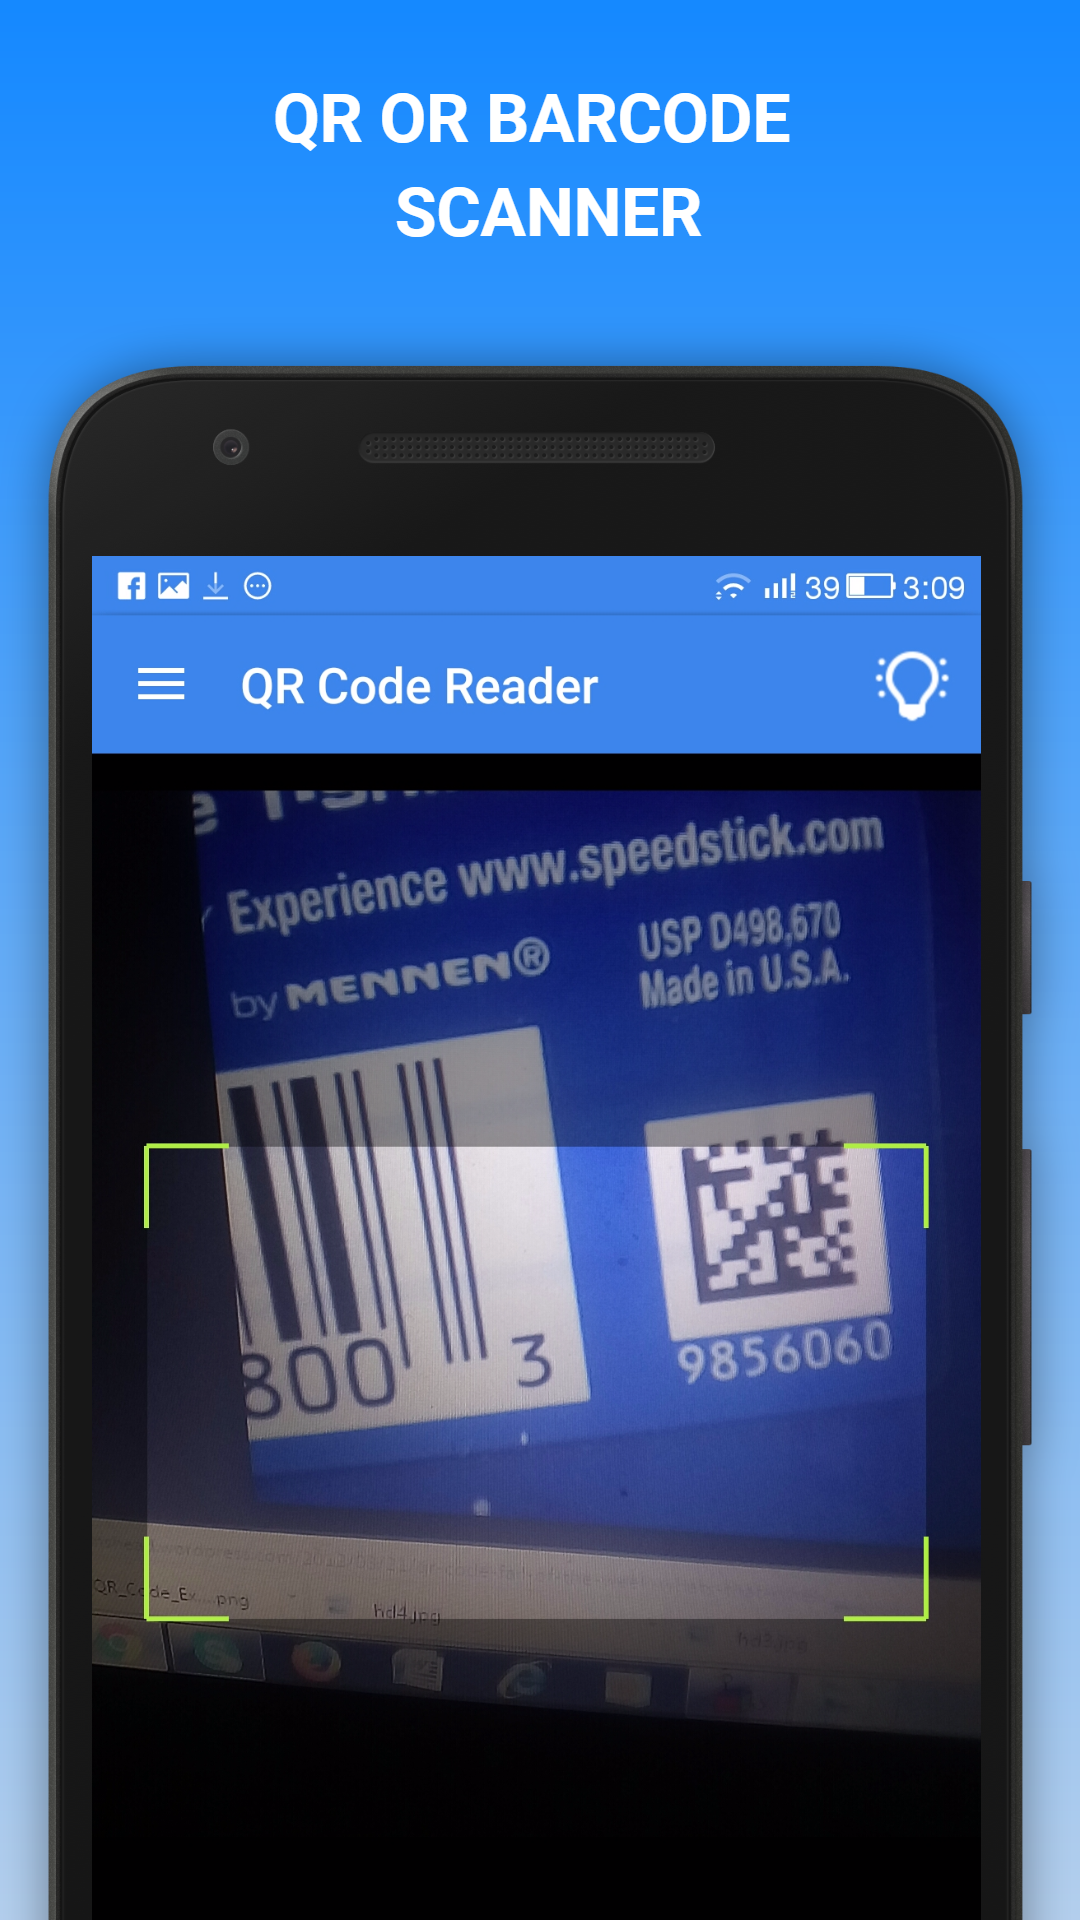 Qr Code Reader App And Barcode Scanner Can Scan All Qr Barcode Types Like Text Url Isbn Product Contact Calendar Email Location Wi Fi And Many Other